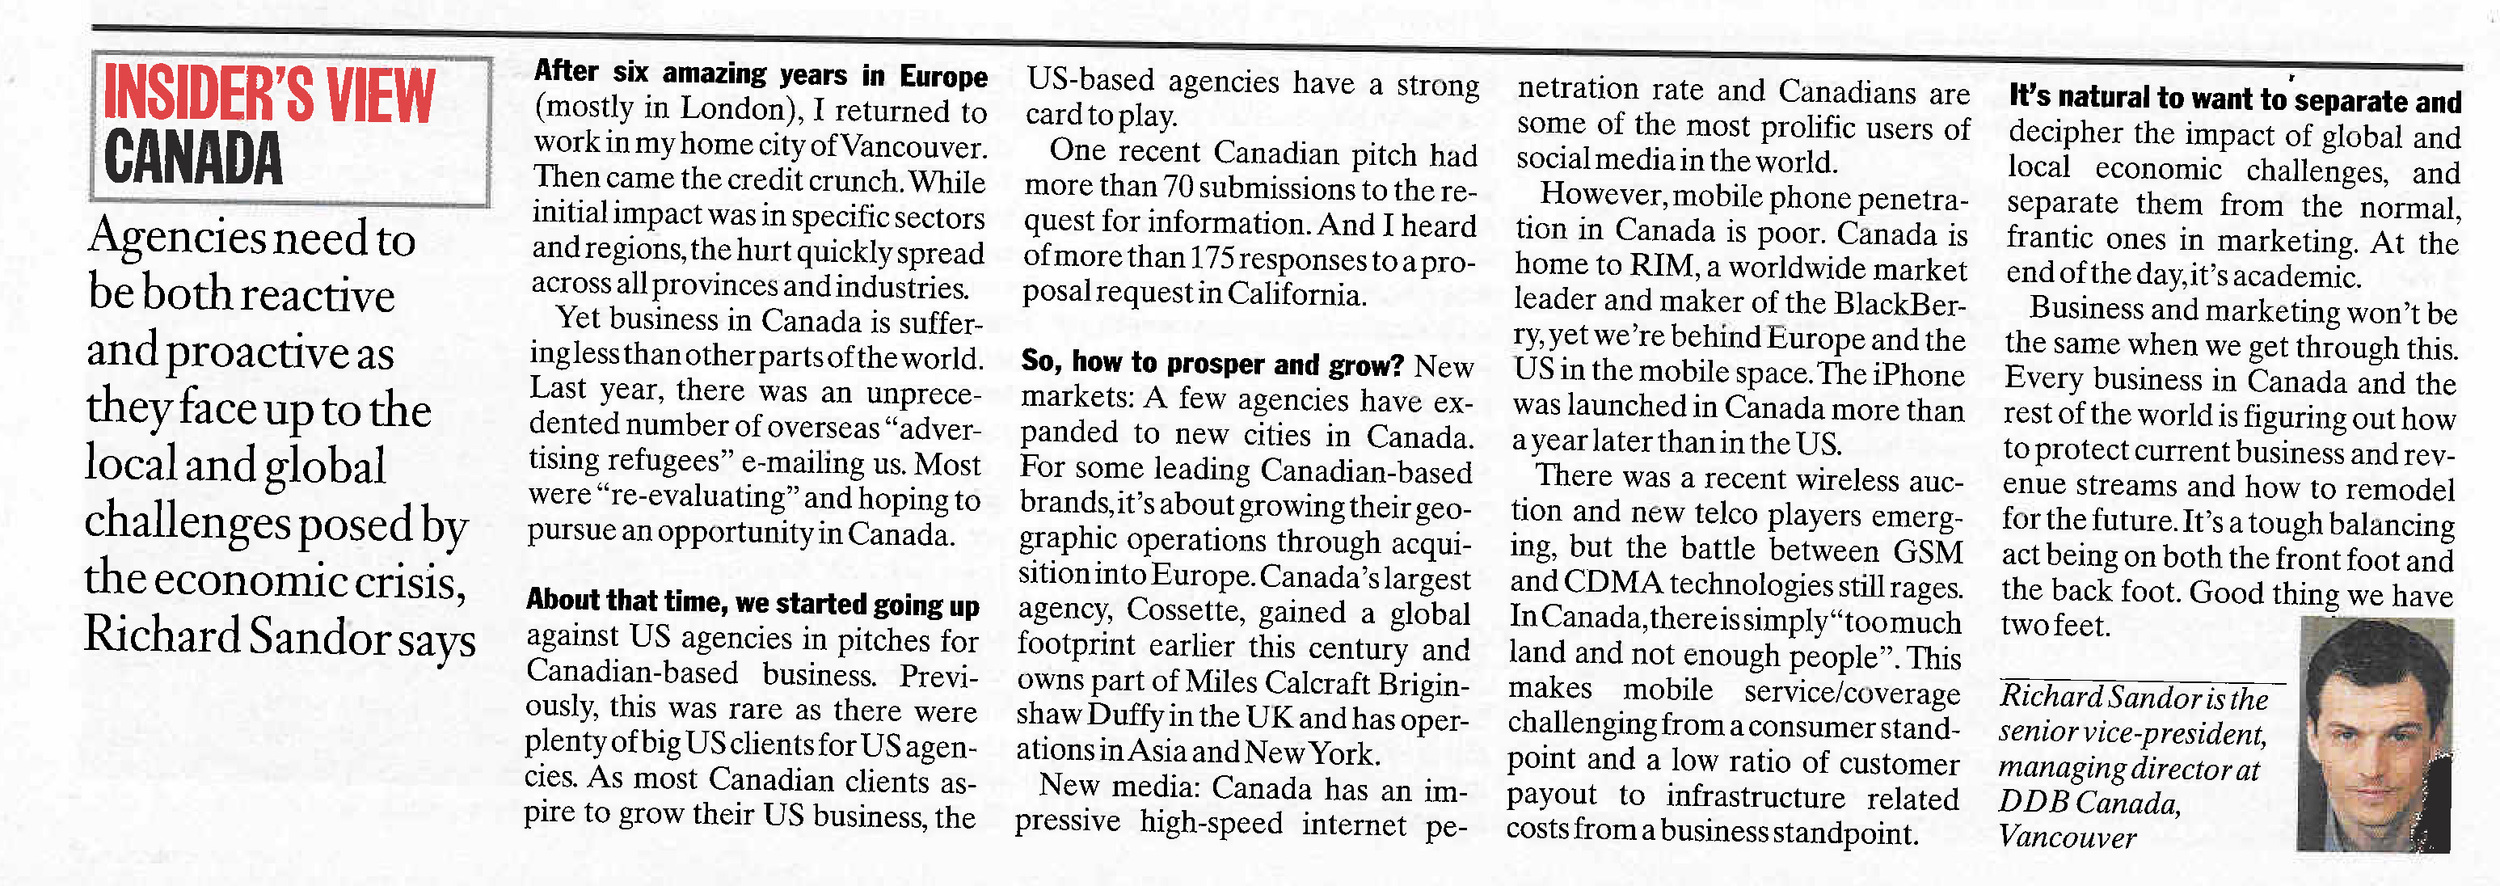 An insiders View of Canada for Campaign Magazine - a leading Trade Publication in the UK.